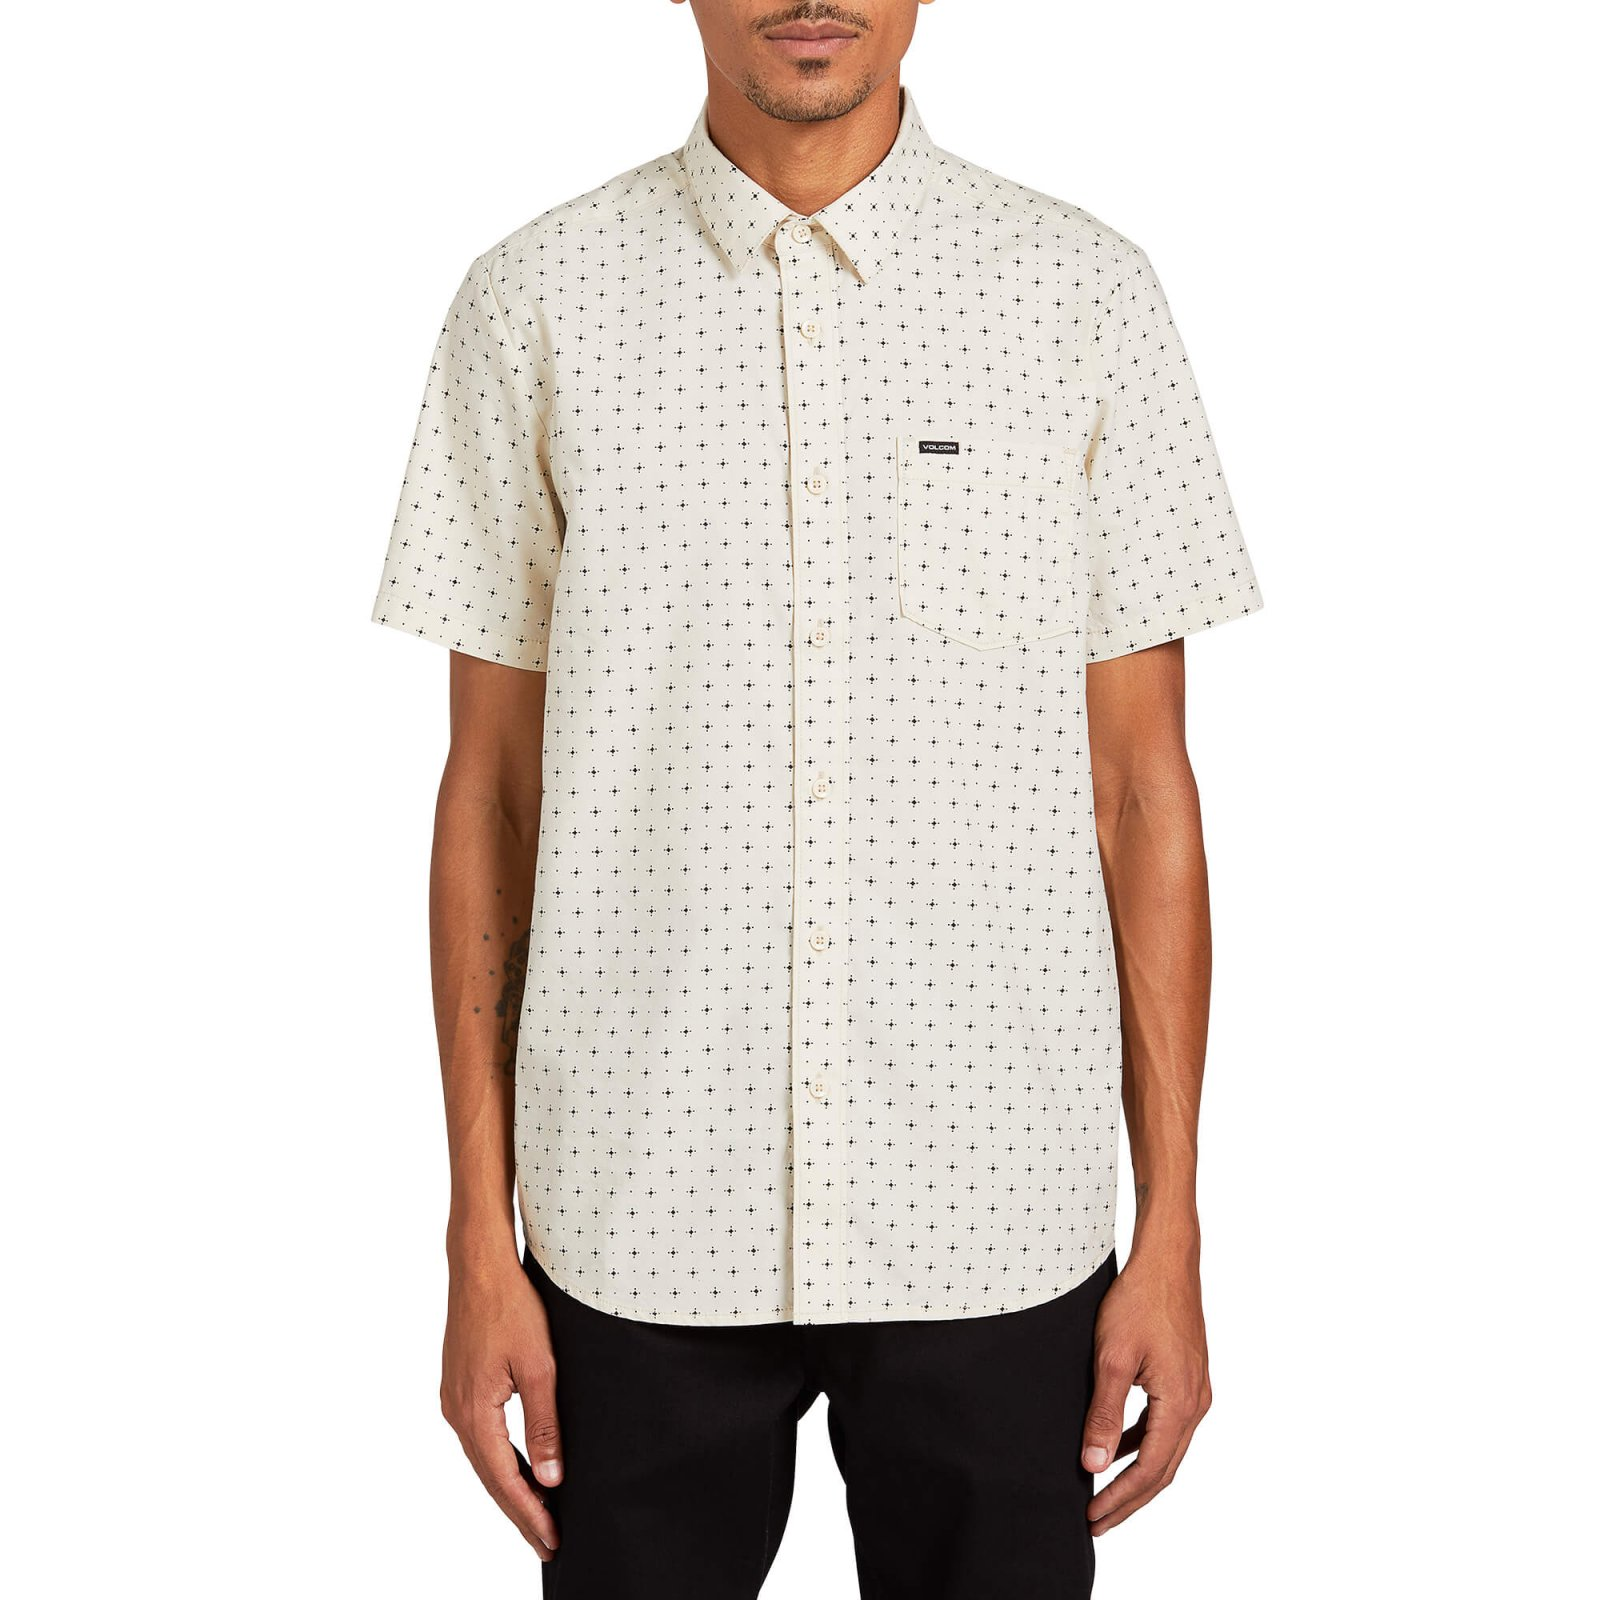 Volcom Hallock Short Sleeve Button Up Shirt